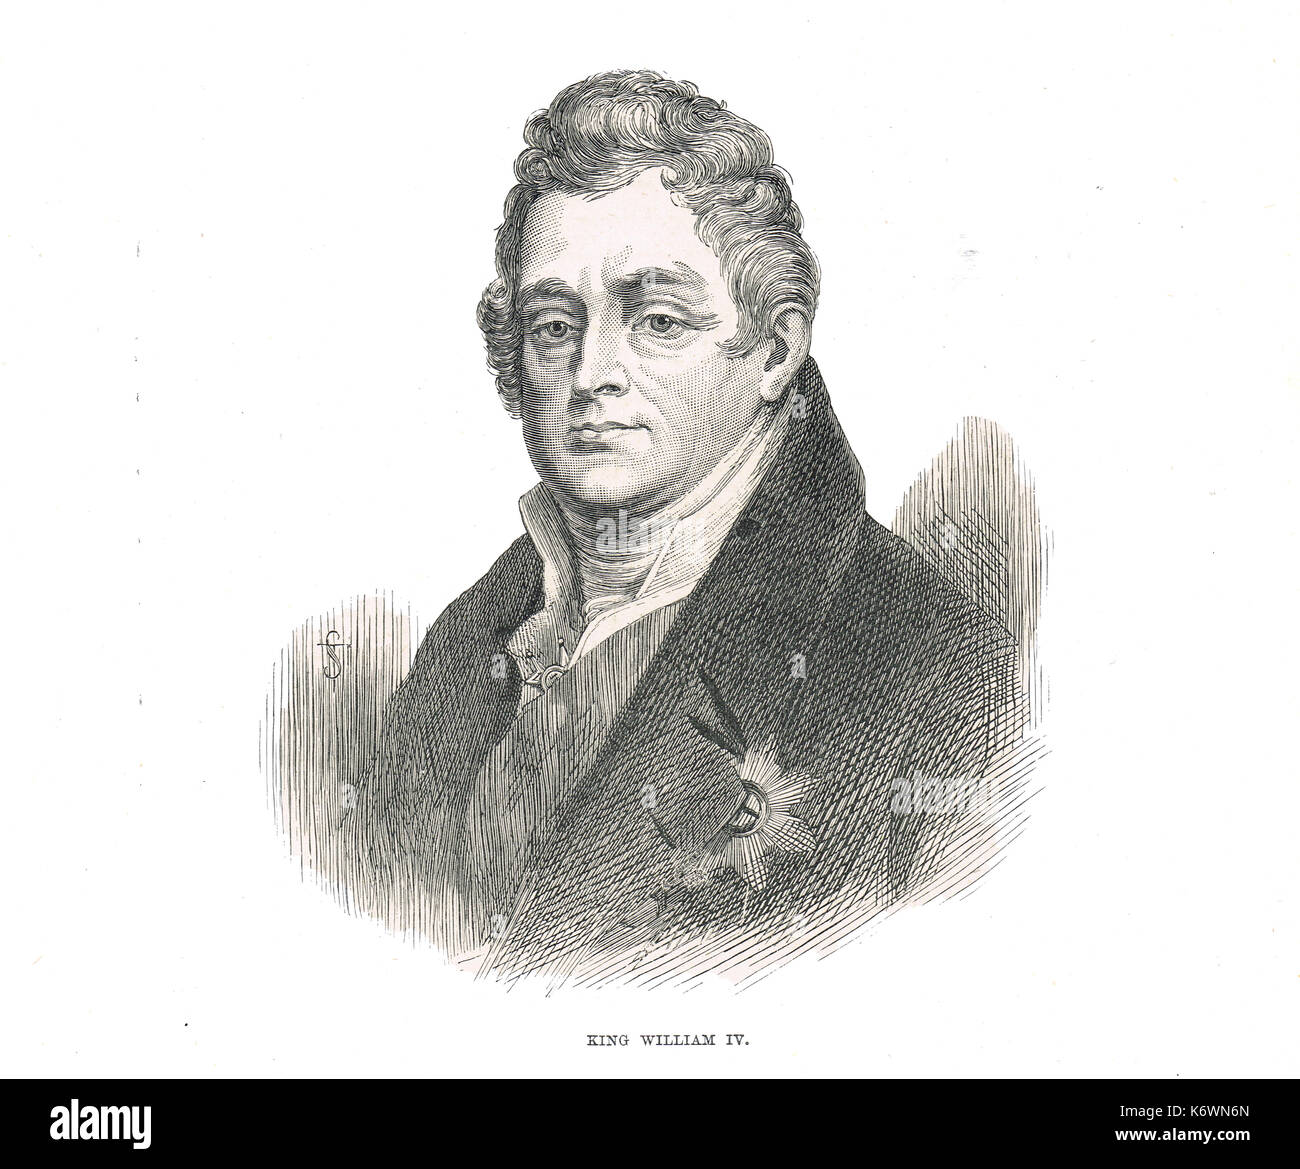 William IV King of the United Kingdom of Great Britain and Ireland, King of Hanover, 26 June 1830 – 20 June 1837 Stock Photo